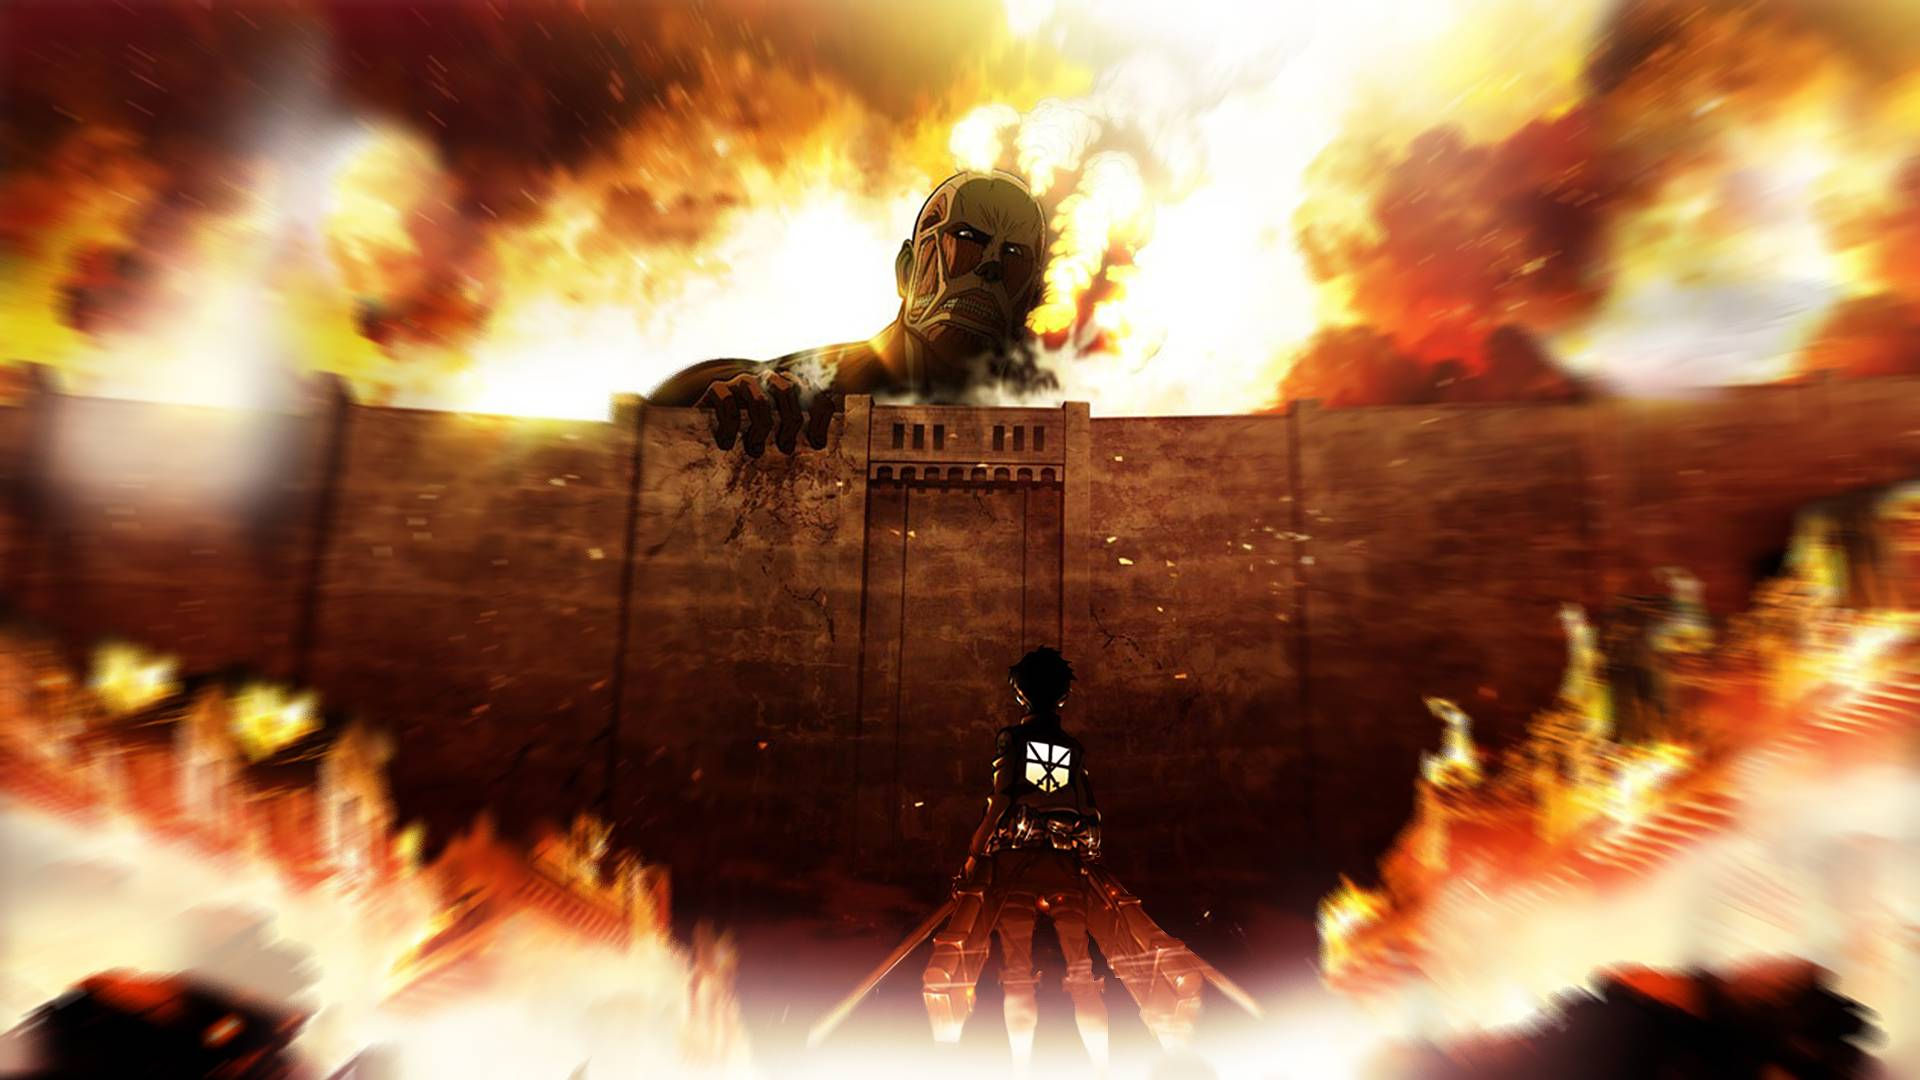 Attack On Titan Pc Wallpaper Posted By John Simpson